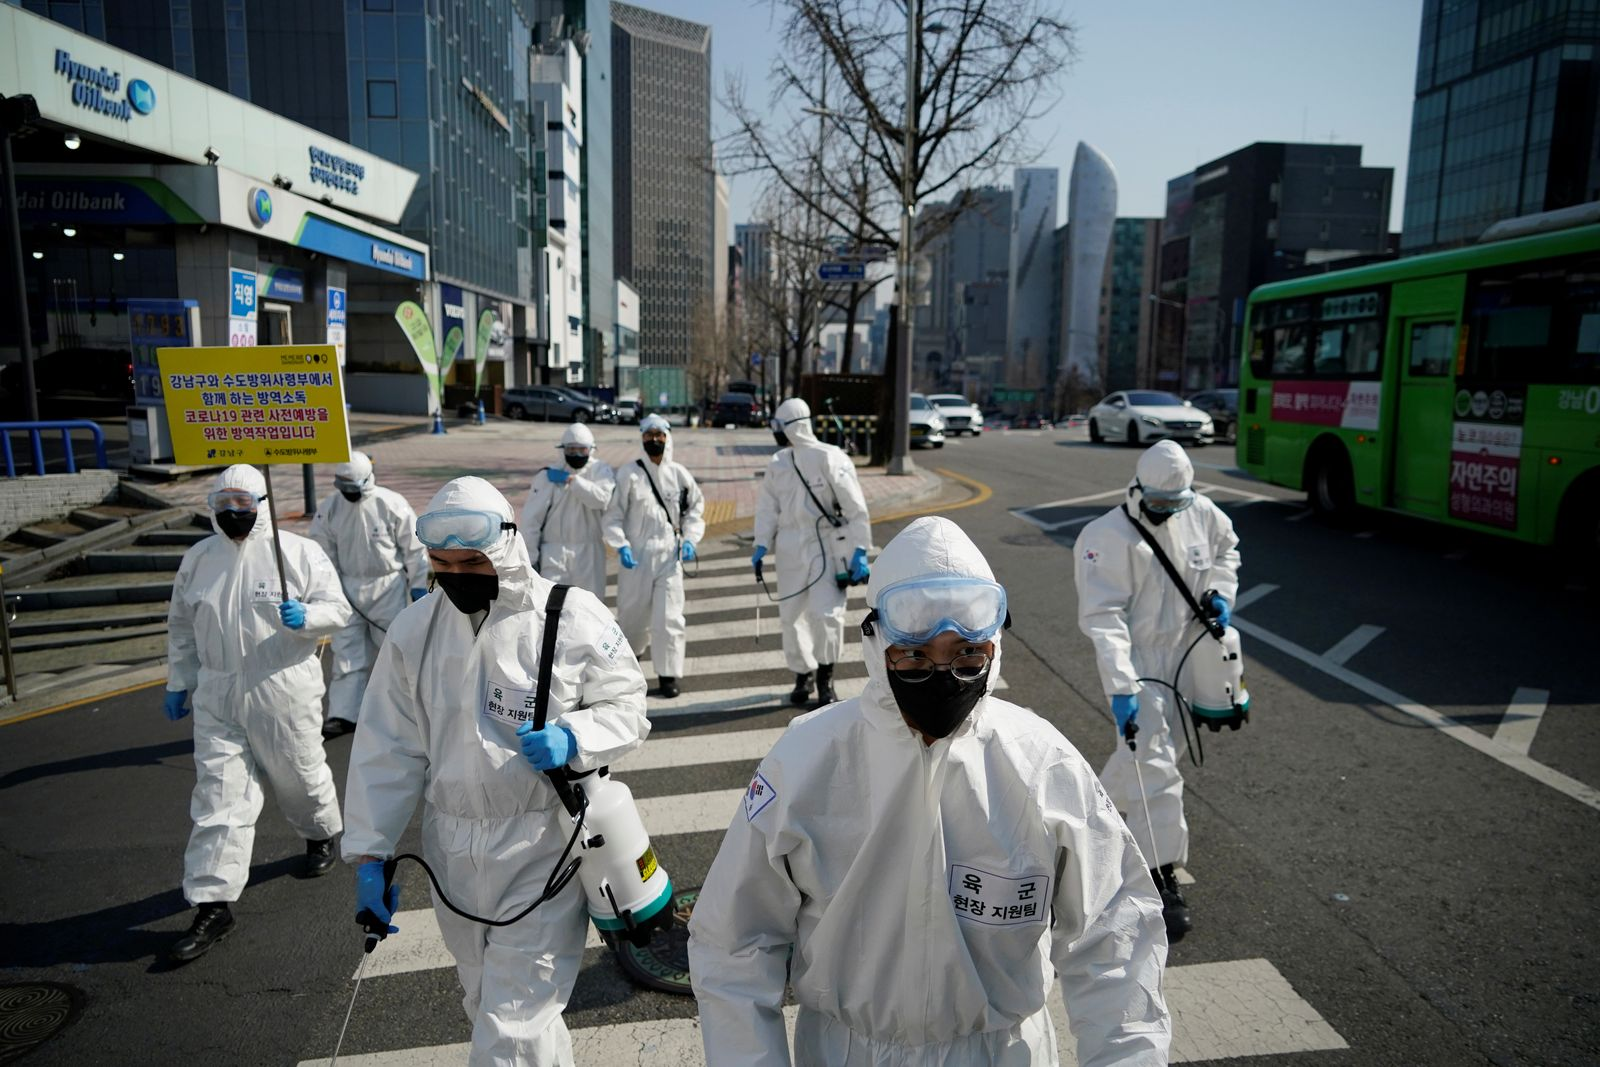 South Korean soldiers in protective gear sanitize a street at a shopping district in Seoul